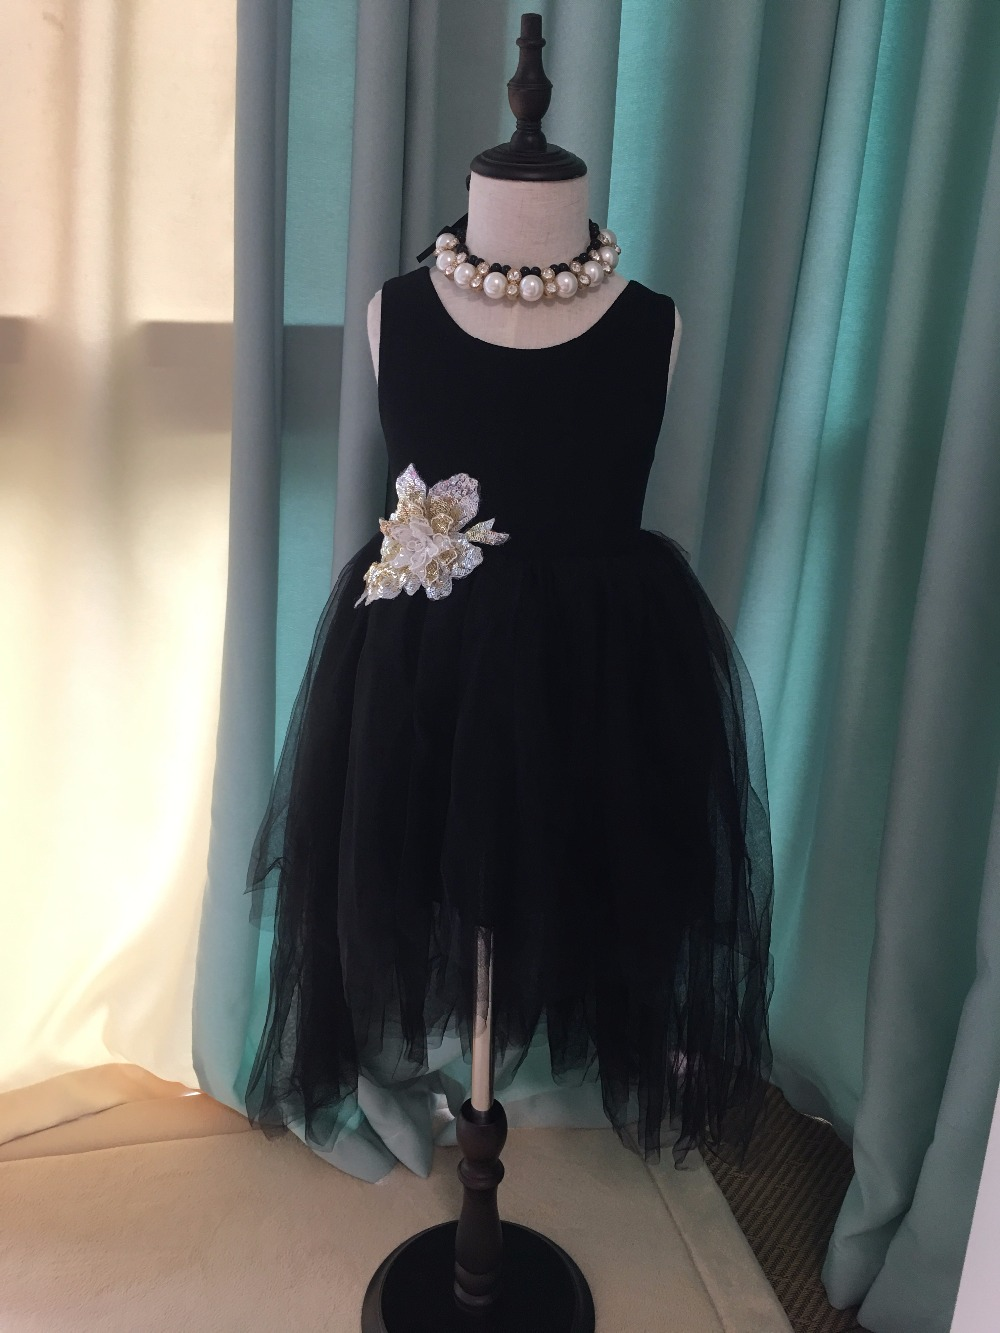 2019 New fashion kids girls birthday dress children roses flowers sequins dress toddler lace party vestido with tails